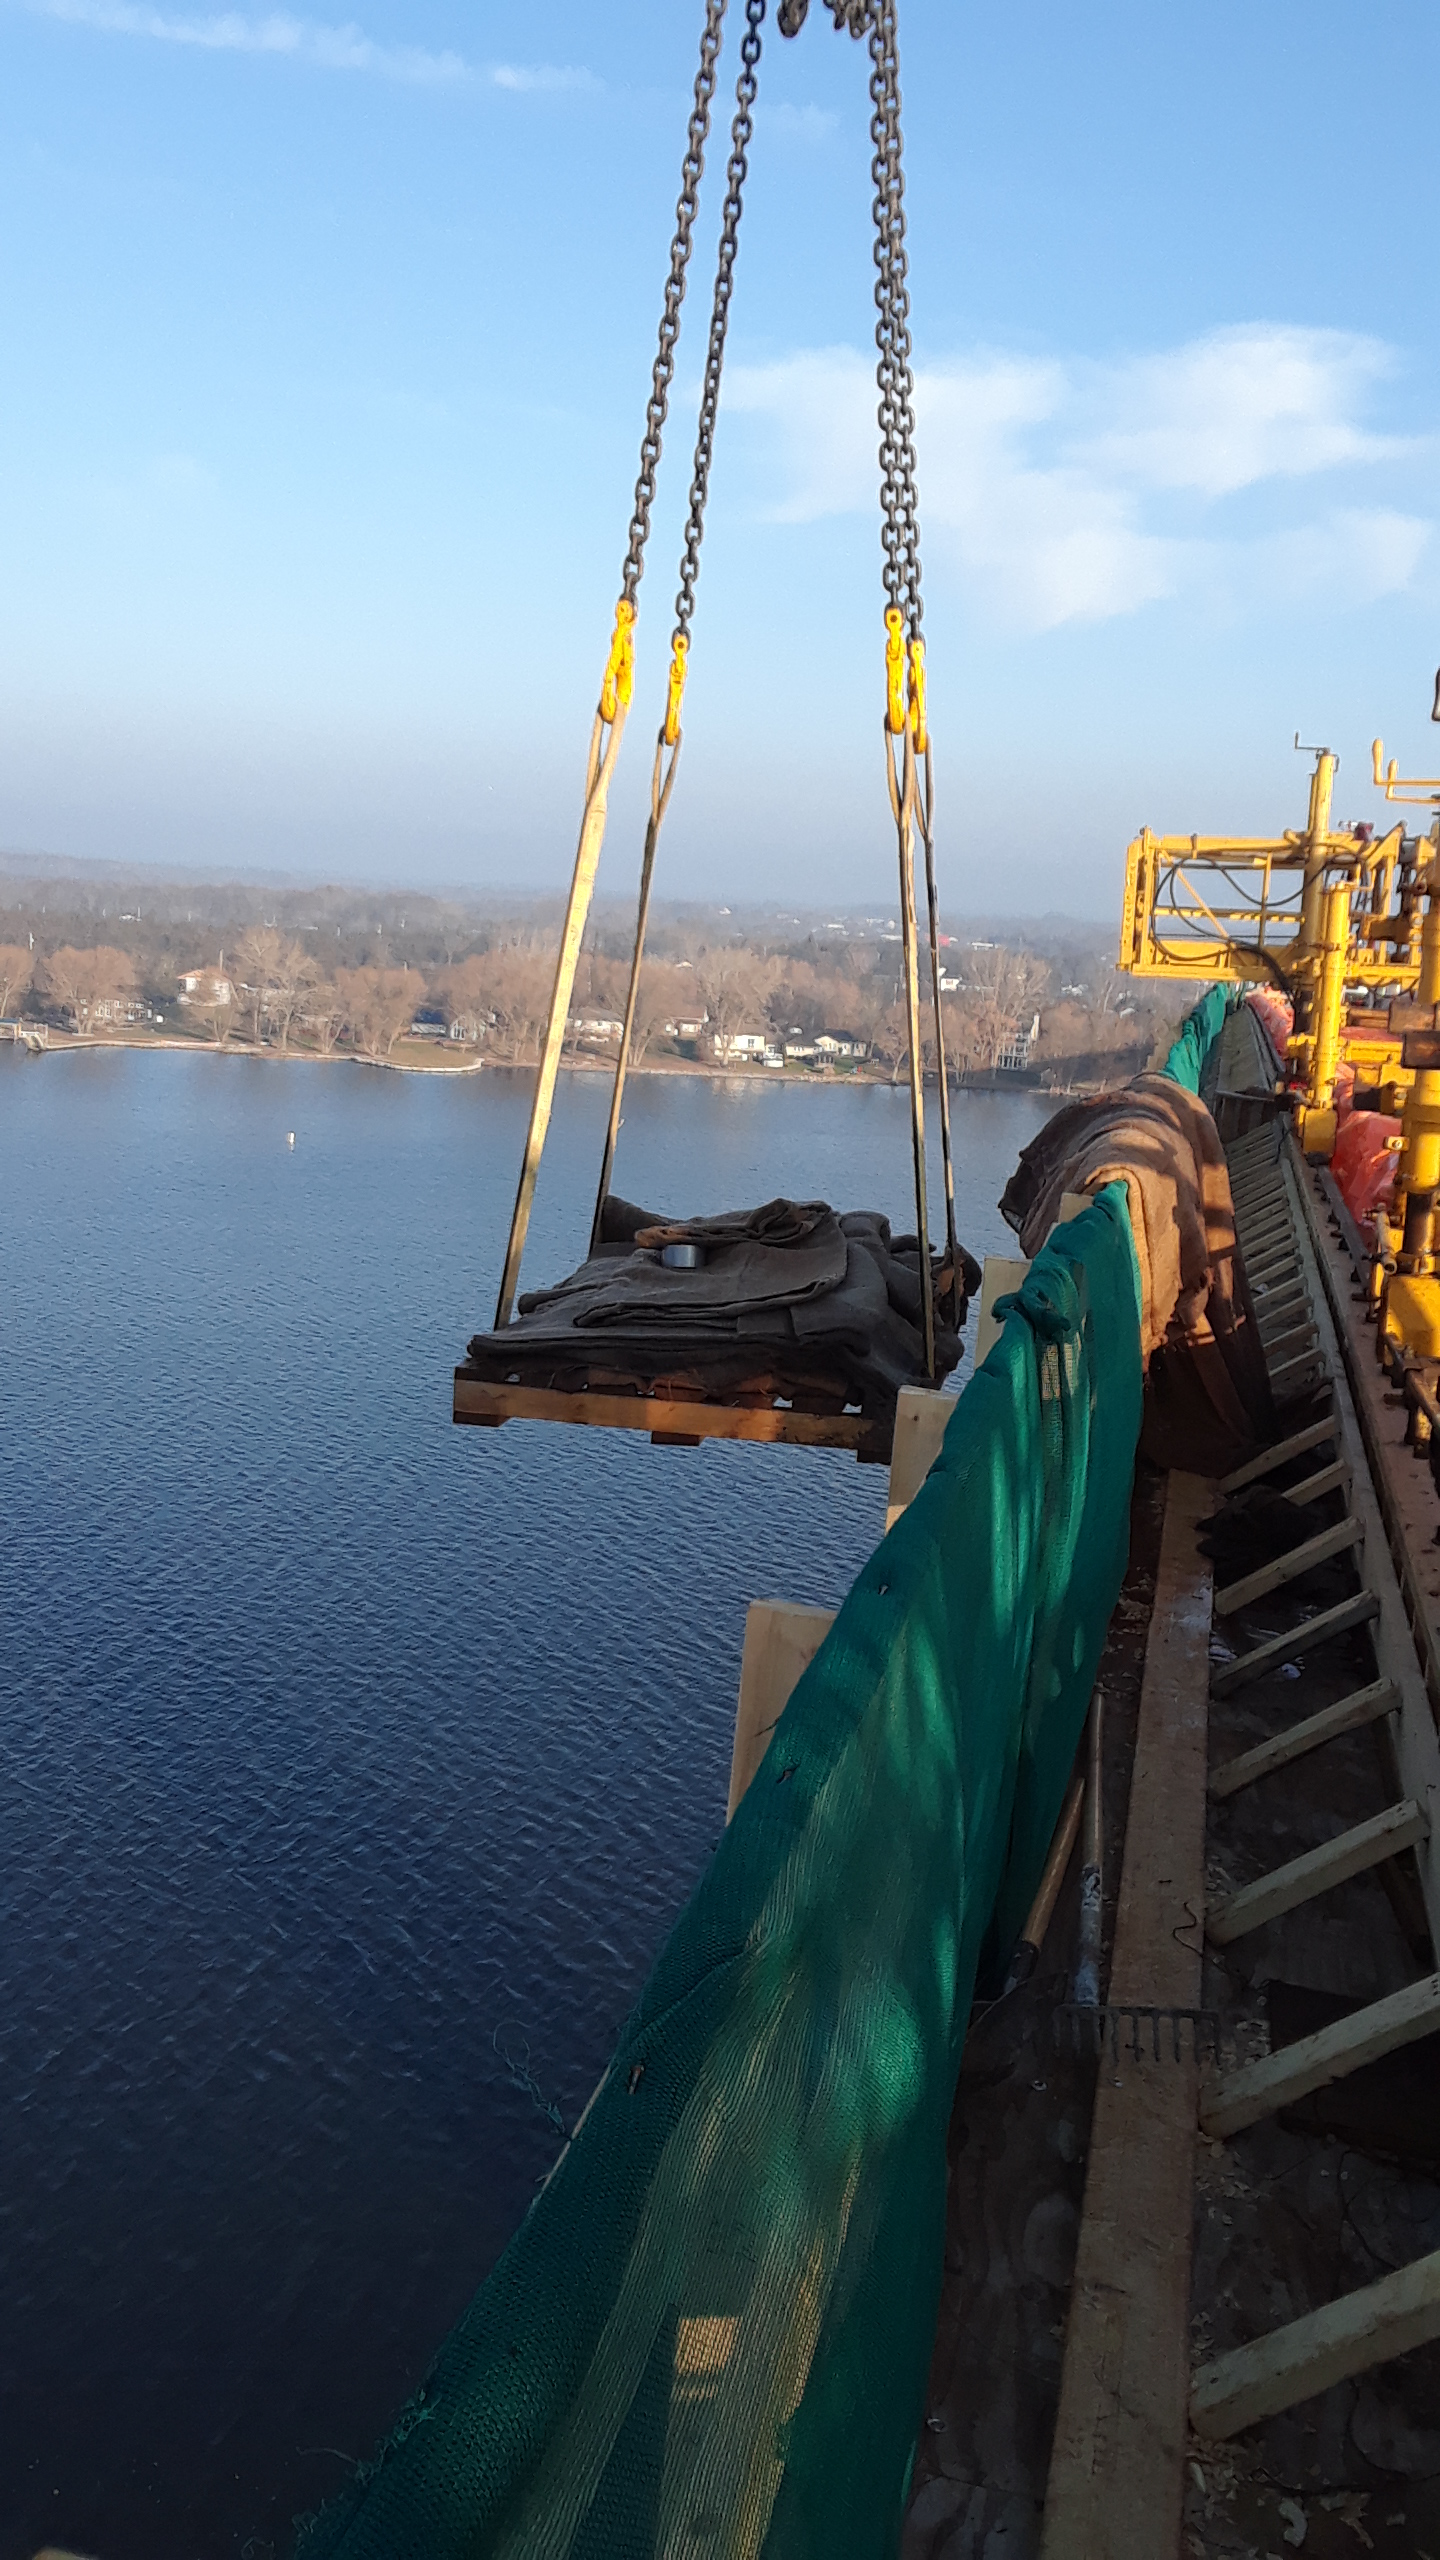 Burlap curing material being lifted from the barge